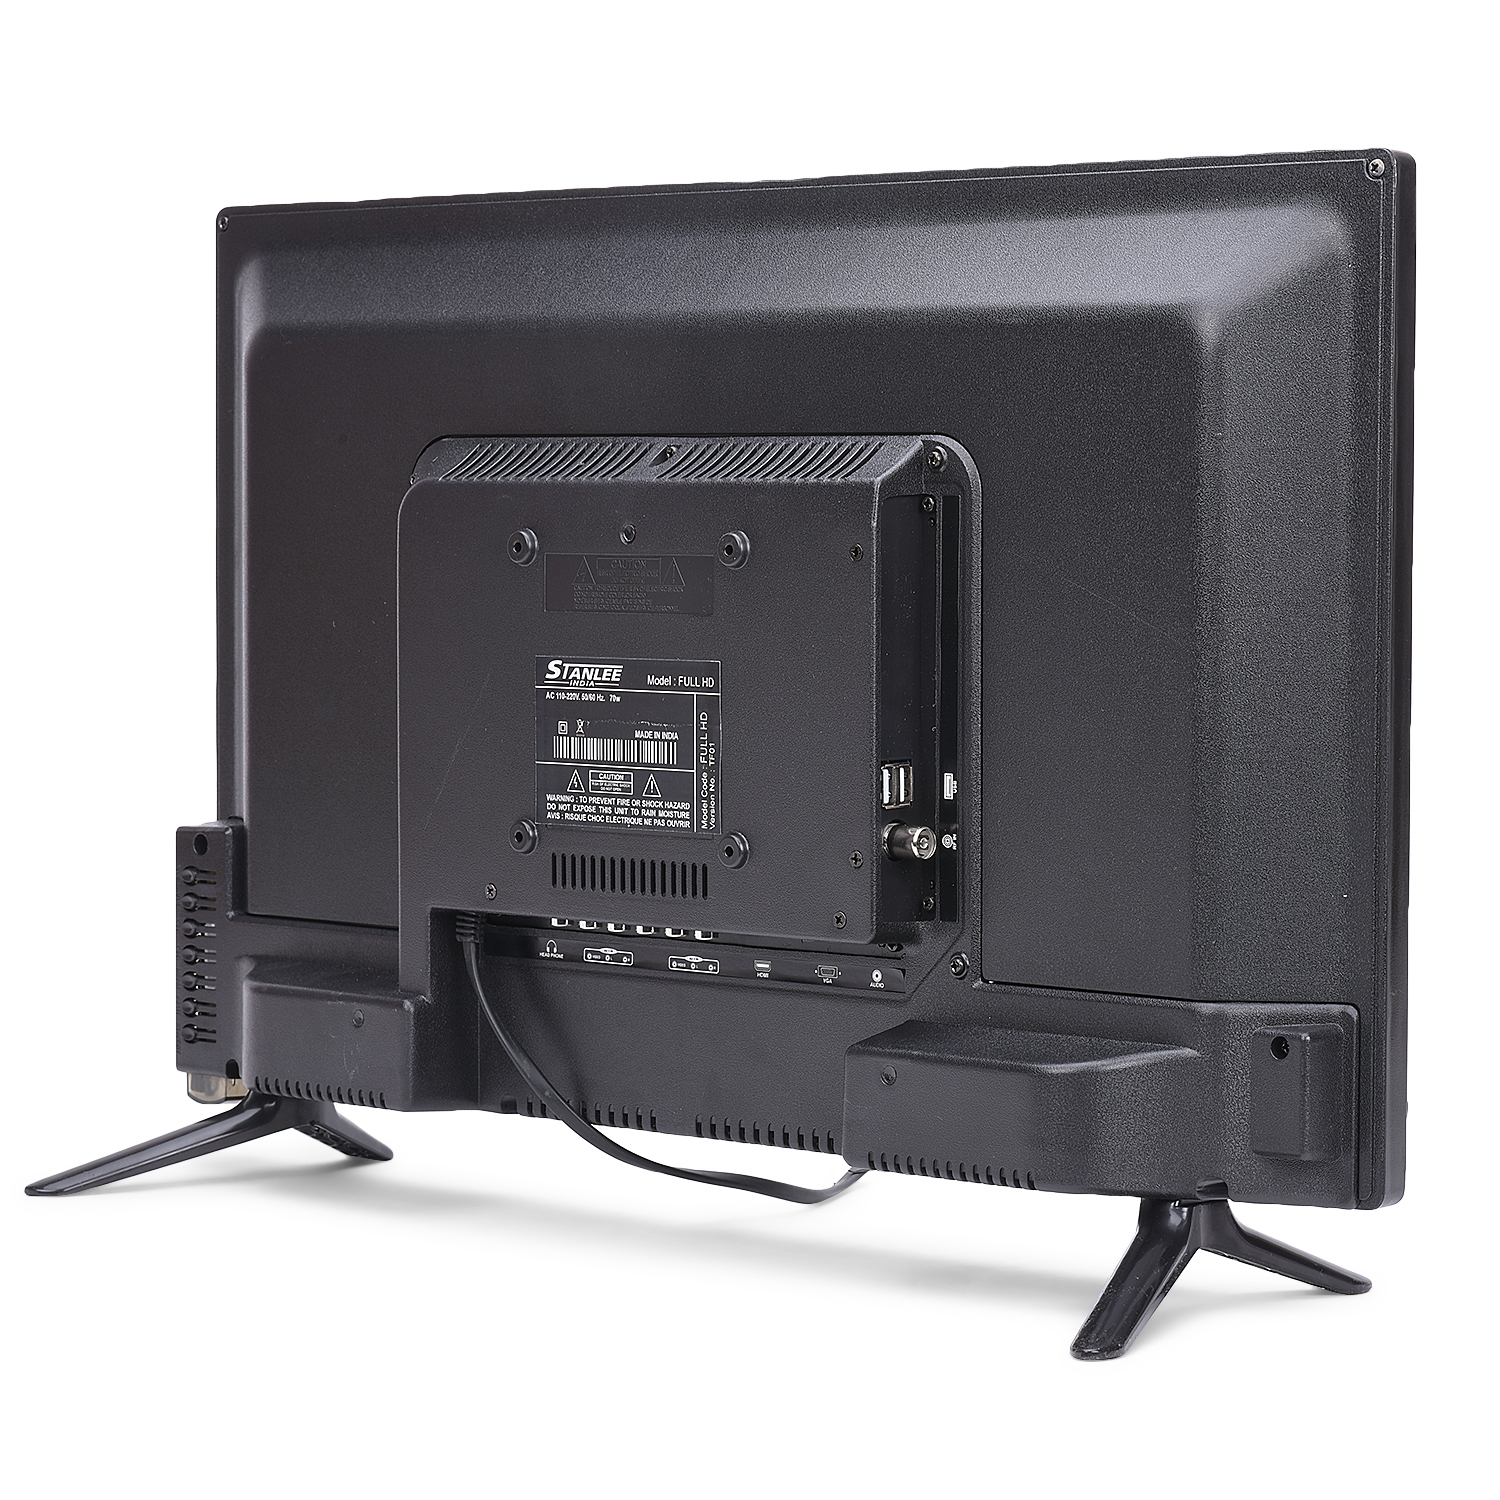 Stanlee India 32 Inch Pro X1 LED TV